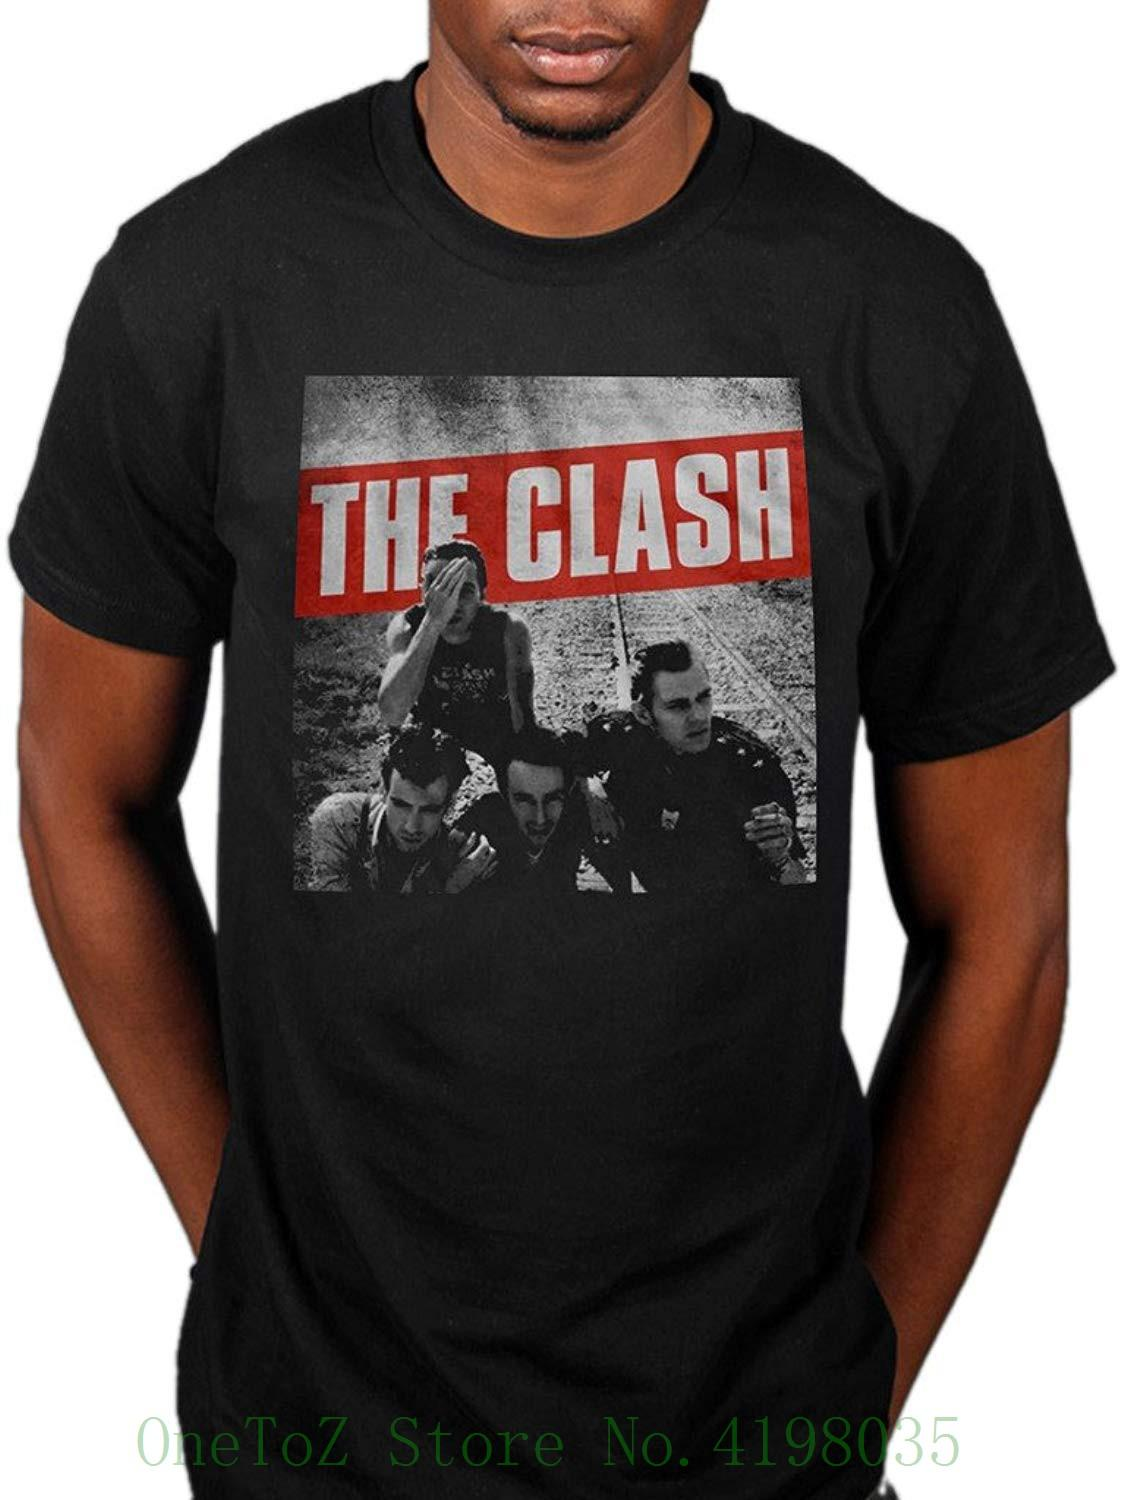 c5392b7d3cb Official The Clash Combat Rock T Shirt Cut The Crap London Calling Man  Fashion Round Collar T Shirt Shirts And Tshirts Tee Shirts Sale From  Onetozstore